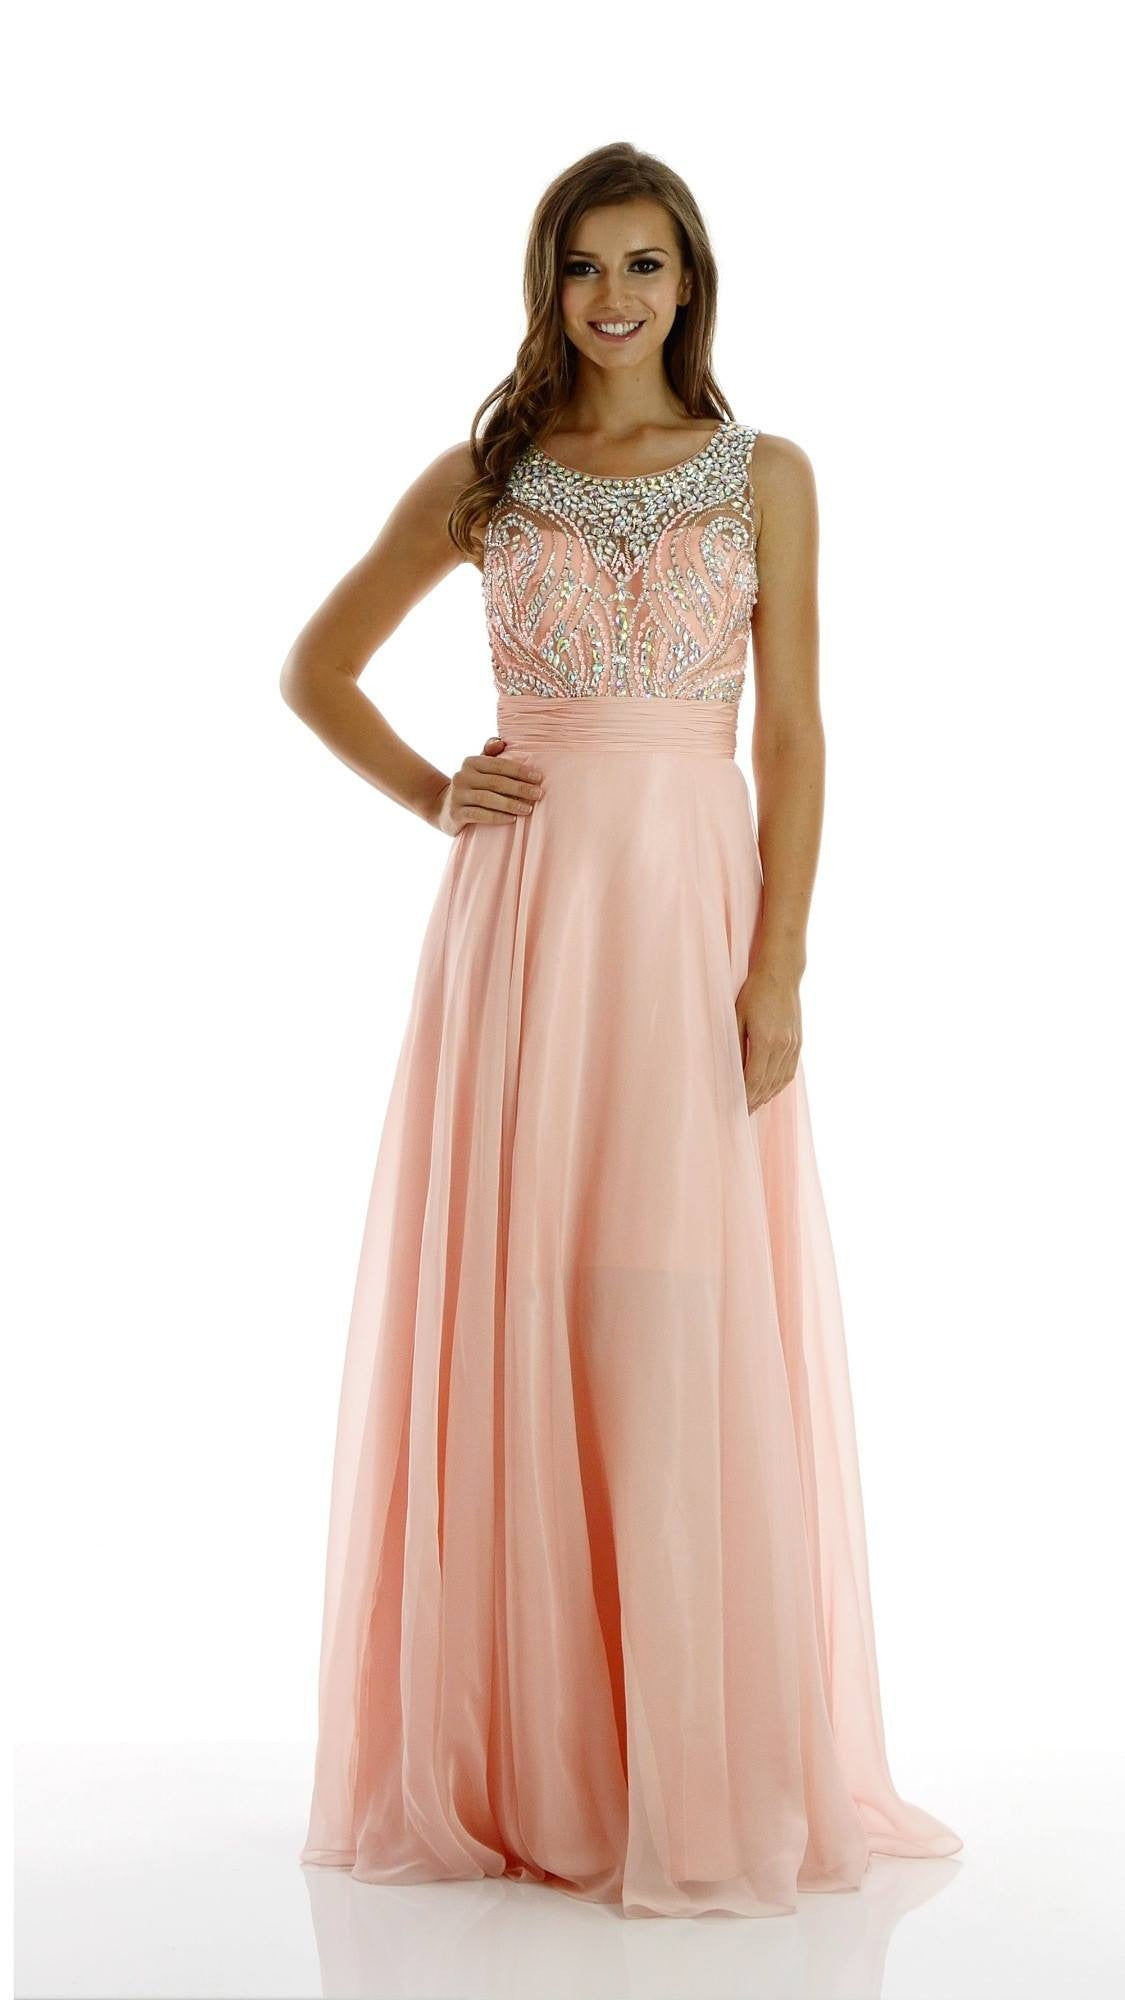 Sexy prom dresses gorgeous illusion neckline dress w simply fab 101 7136 prom cheap gorgeous illusion neckline dress with full rhinestone bodice and back ombrellifo Choice Image